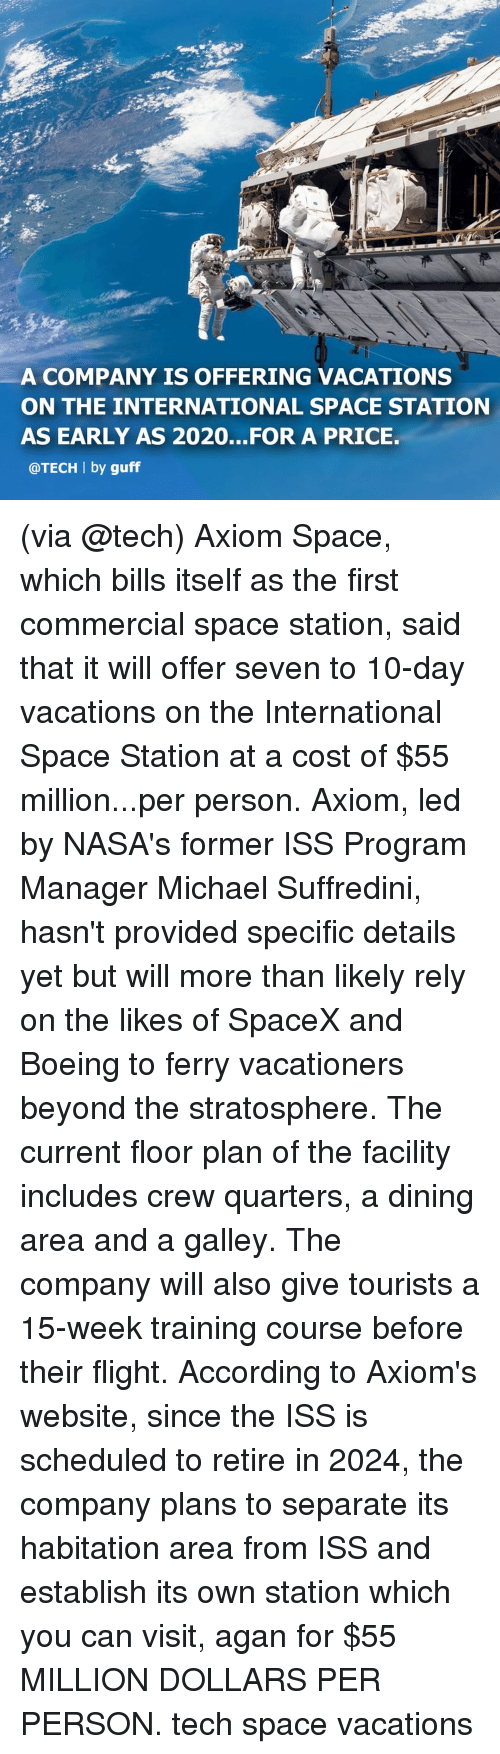 Memes, Boeing, and Flight: A COMPANY IS OFFERING VACATIONS  ON THE INTERNATIONAL SPACE STATION  AS EARLY AS 2020...FOR A PRICE.  @TECH l by guff (via @tech) Axiom Space, which bills itself as the first commercial space station, said that it will offer seven to 10-day vacations on the International Space Station at a cost of $55 million...per person. Axiom, led by NASA's former ISS Program Manager Michael Suffredini, hasn't provided specific details yet but will more than likely rely on the likes of SpaceX and Boeing to ferry vacationers beyond the stratosphere. The current floor plan of the facility includes crew quarters, a dining area and a galley. The company will also give tourists a 15-week training course before their flight. According to Axiom's website, since the ISS is scheduled to retire in 2024, the company plans to separate its habitation area from ISS and establish its own station which you can visit, agan for $55 MILLION DOLLARS PER PERSON. tech space vacations